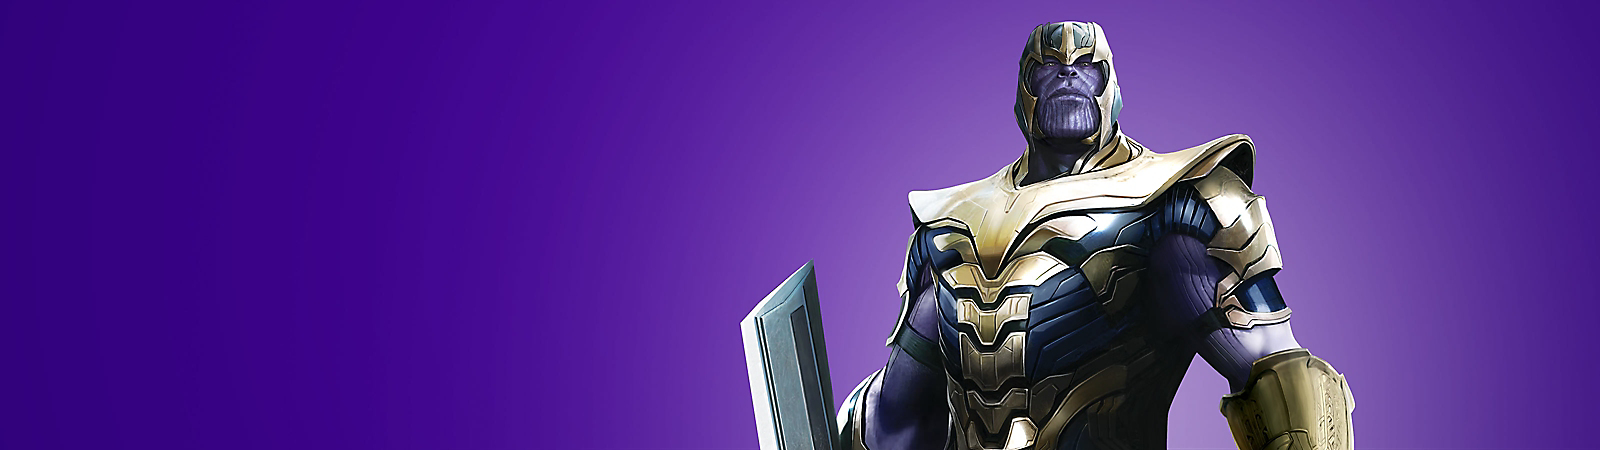 Background image of Thanos